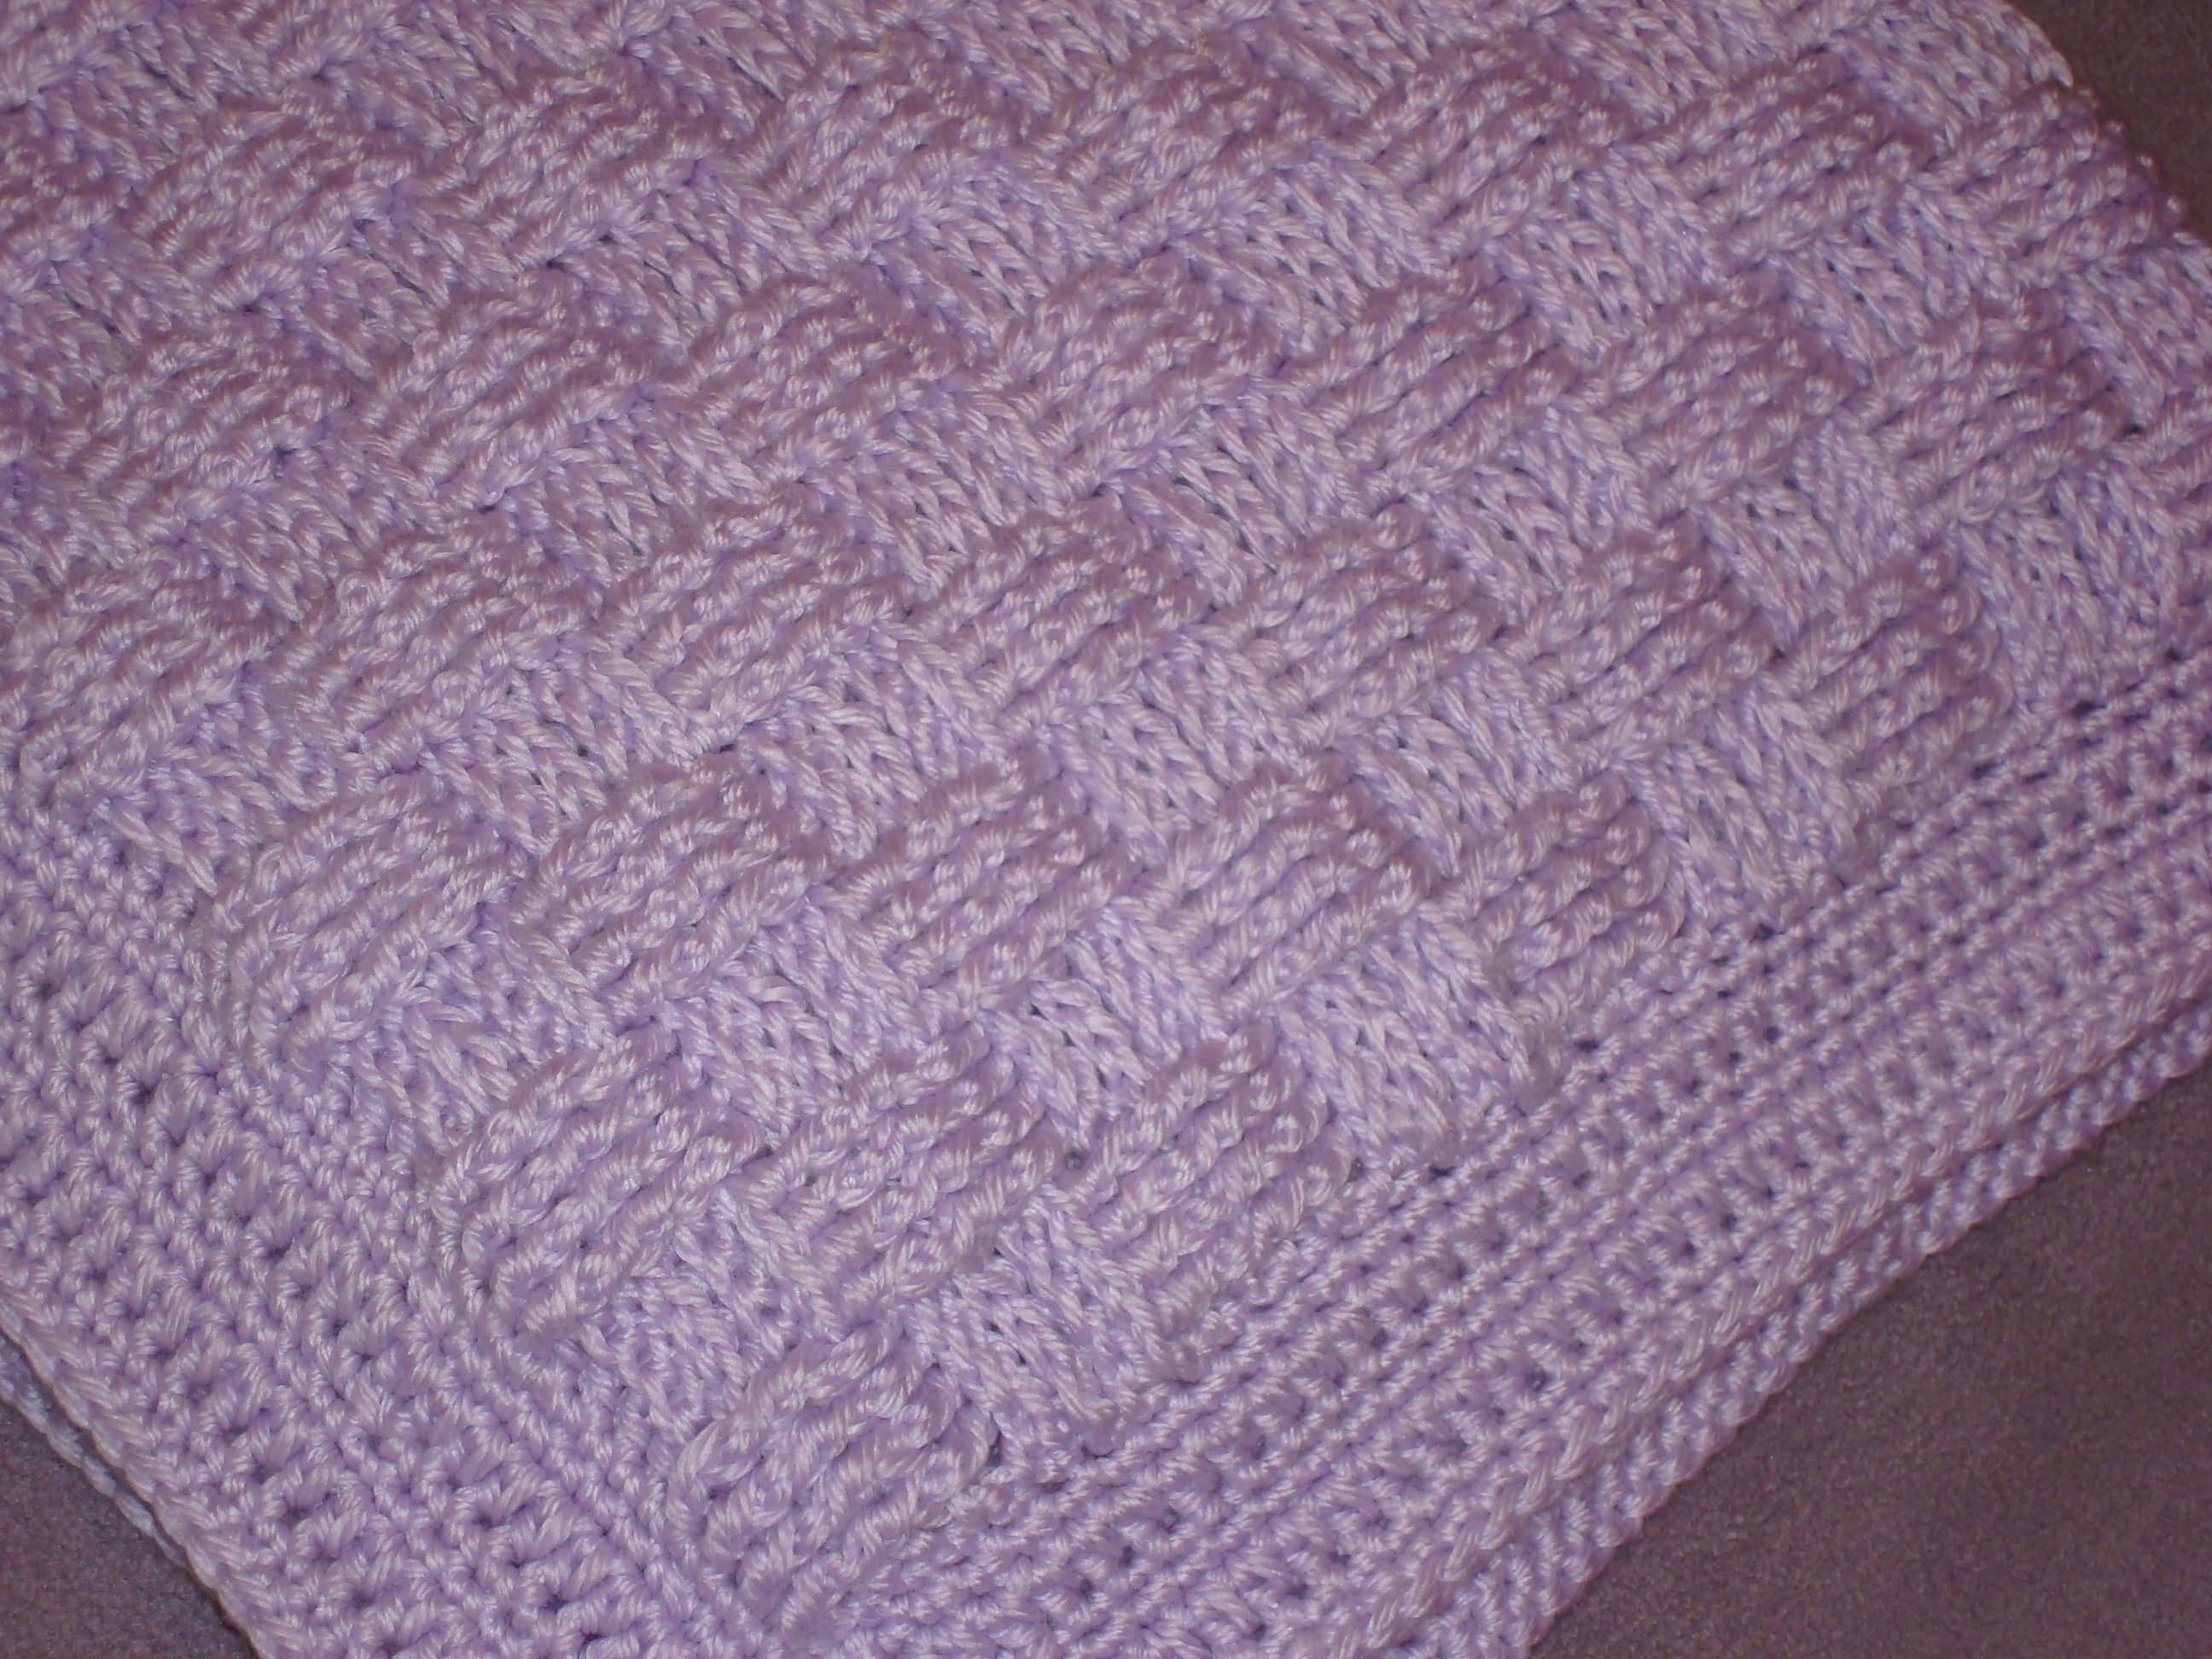 Cousin Crystal\'s Crocheted Basket Weave Baby Blanket | Yarn Over ...